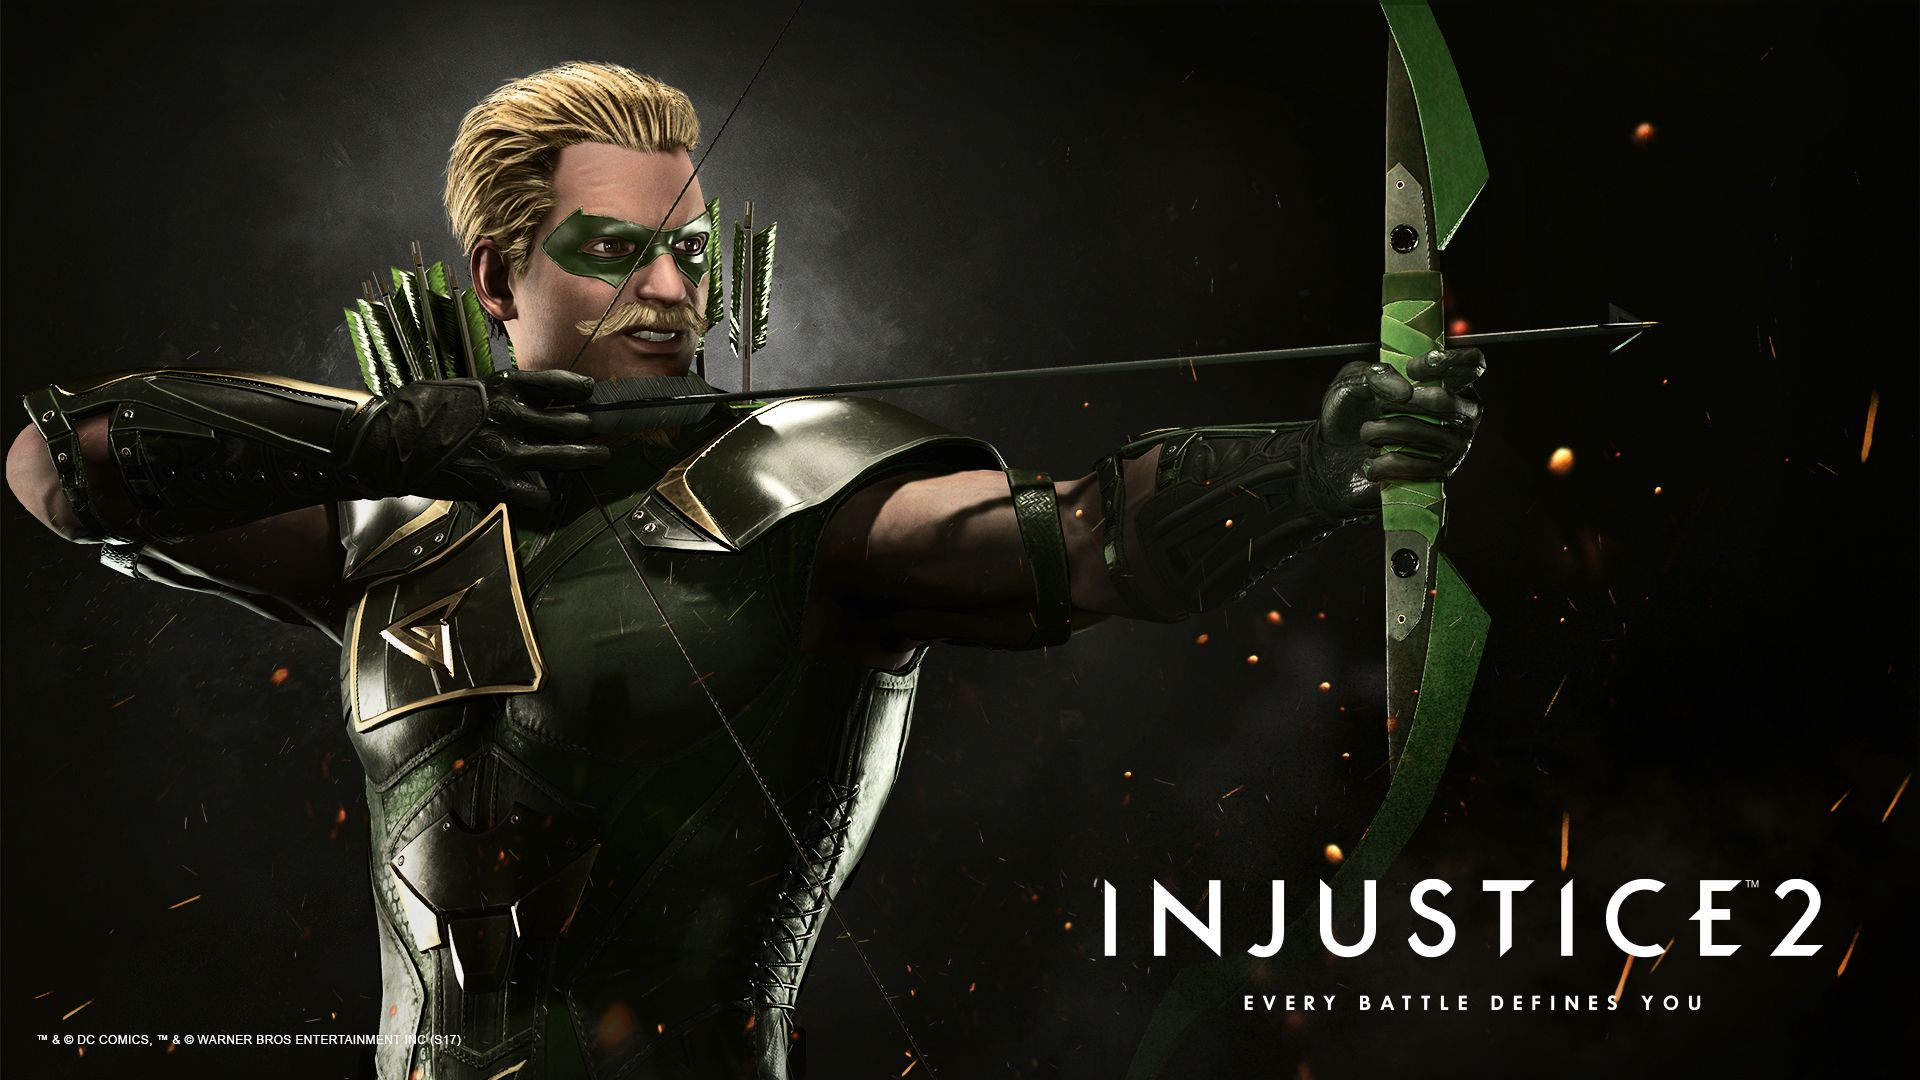 Oliver Queen (Injustice: Fall of the Gods)